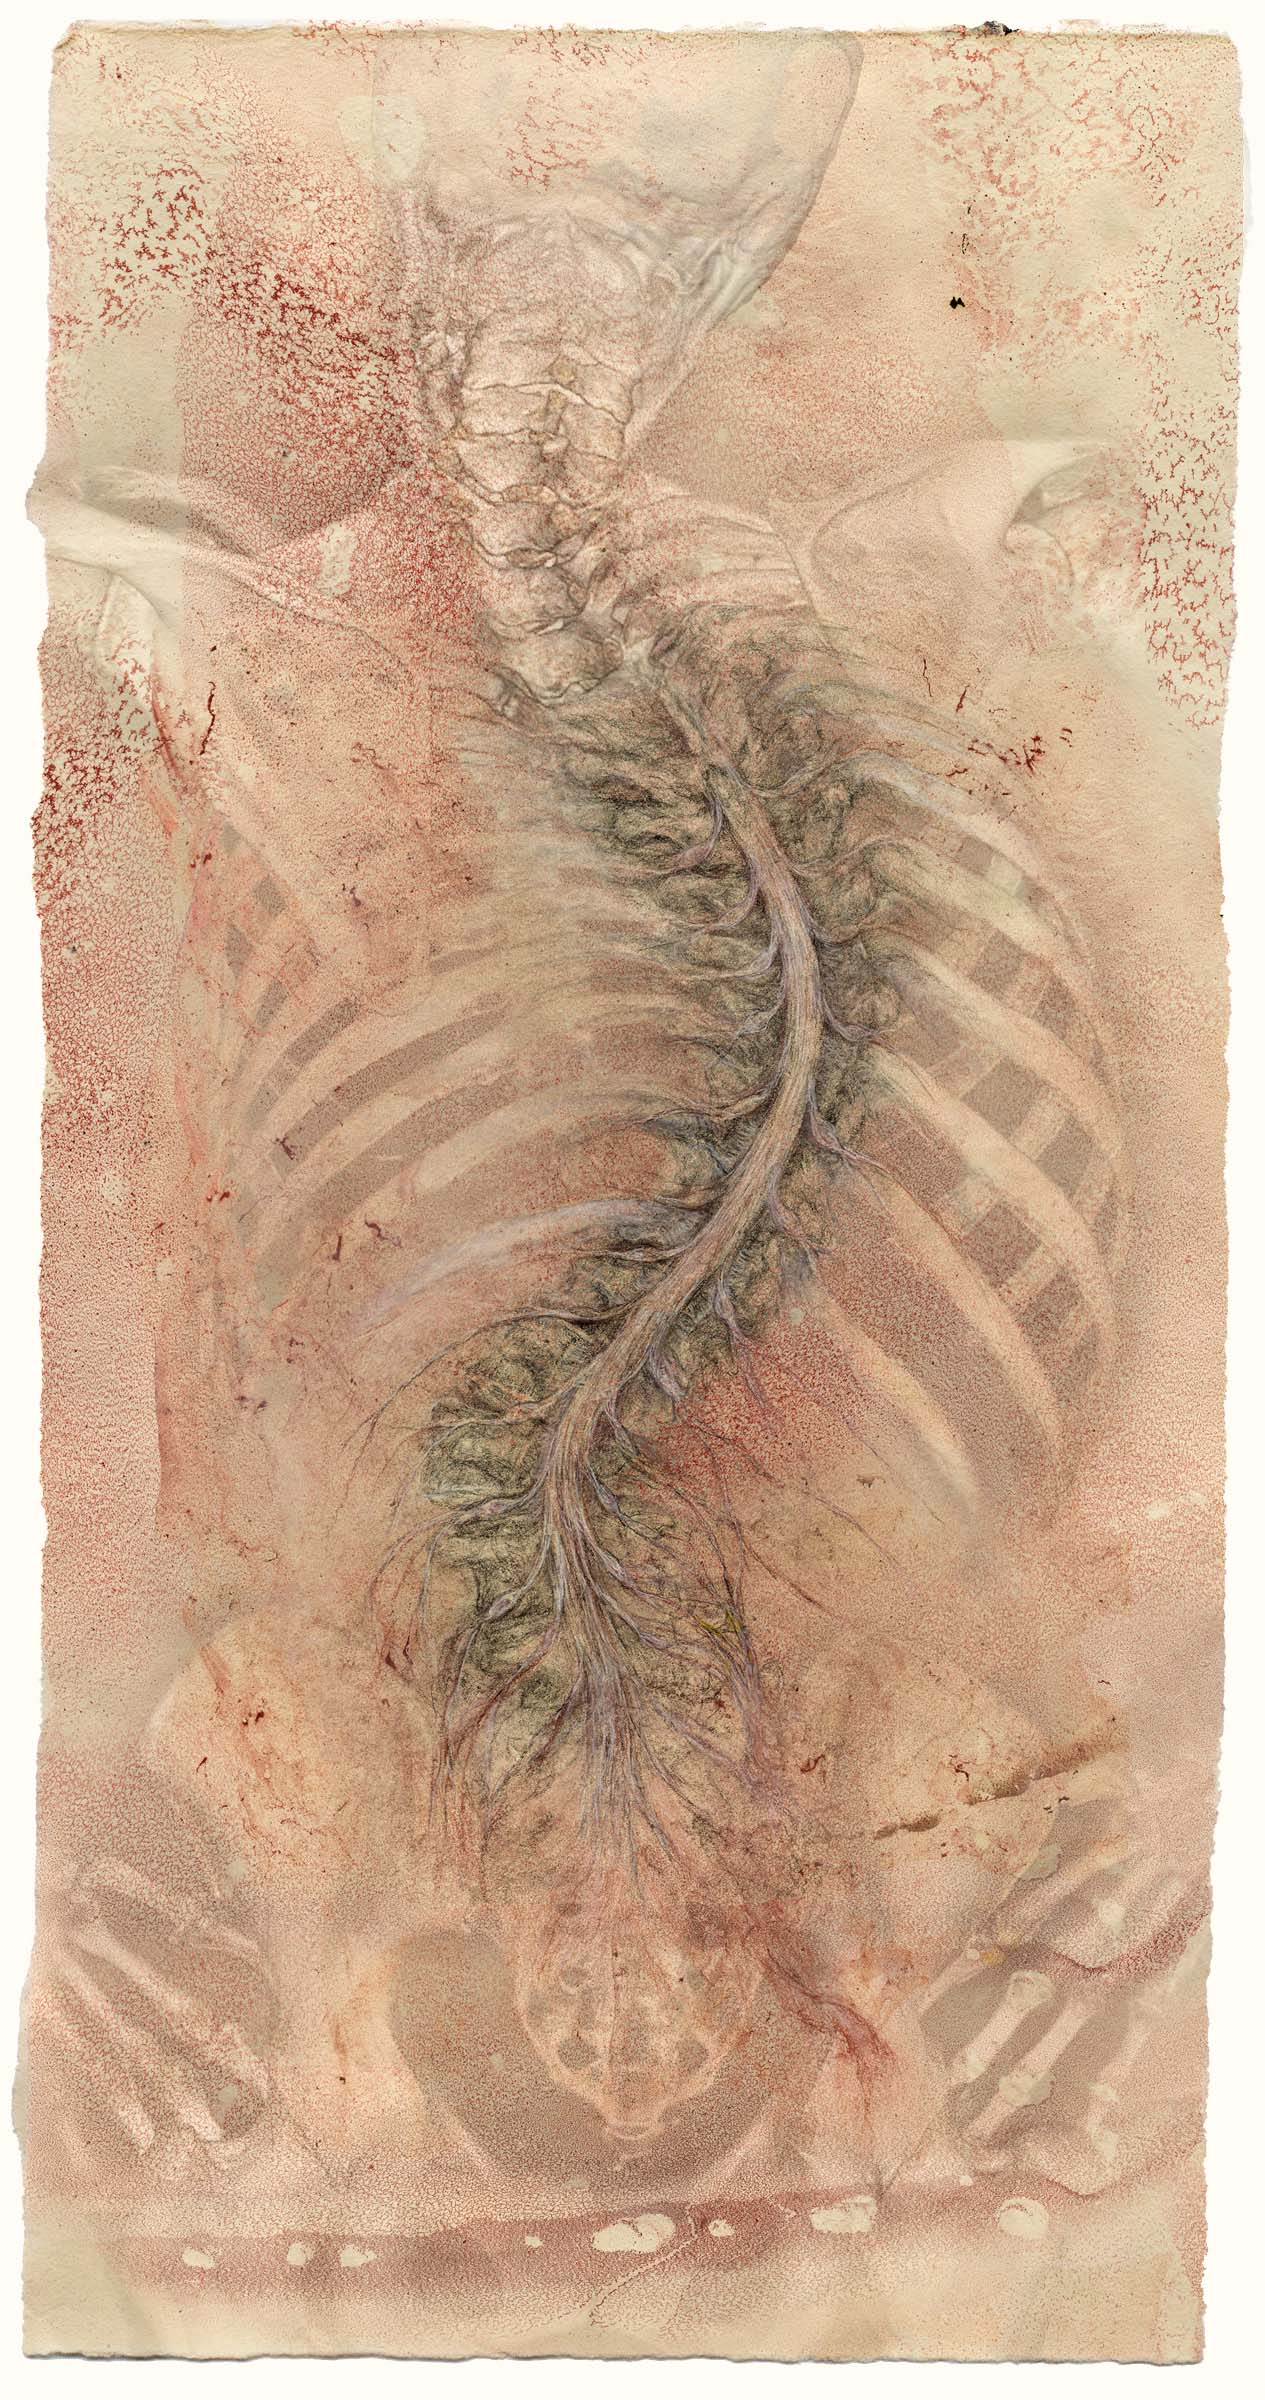 Spinal cord scroll